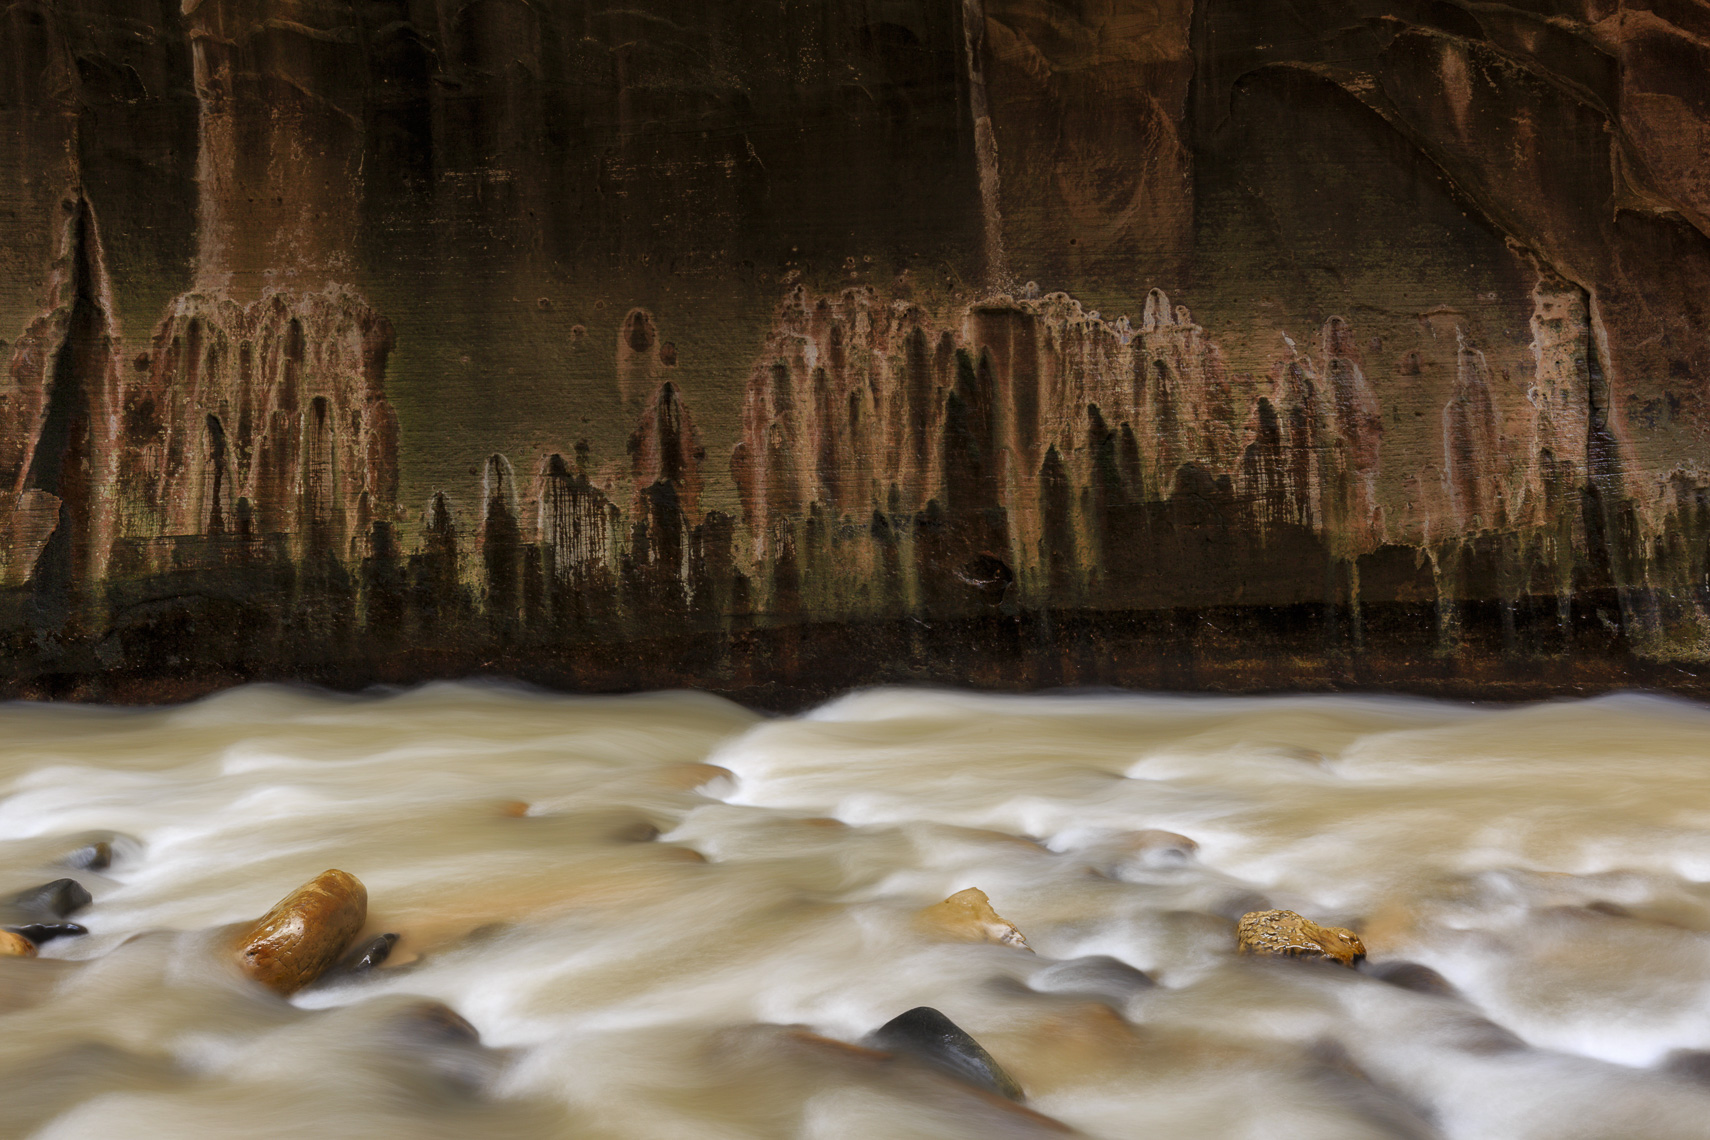 Rock Patterns in The Narrows